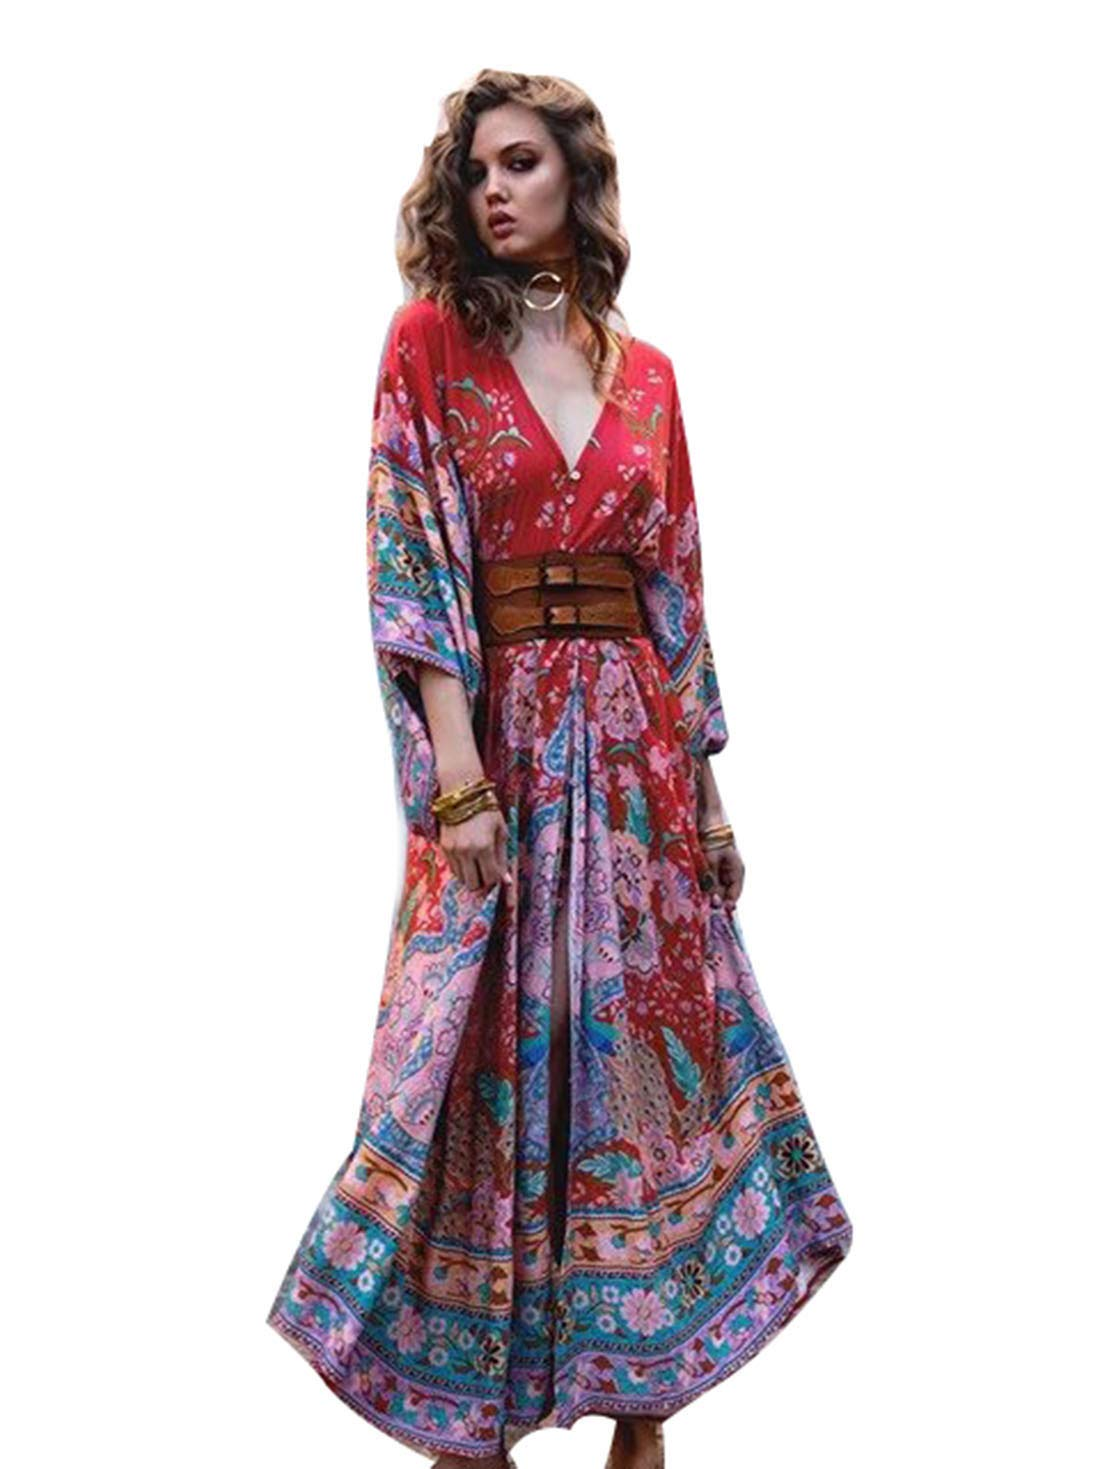 Women's Sexy Deep V Neck LaceUp and Printed Dress with Belt Autumn Long Sleeve Hight Waist Bodycon Dresses